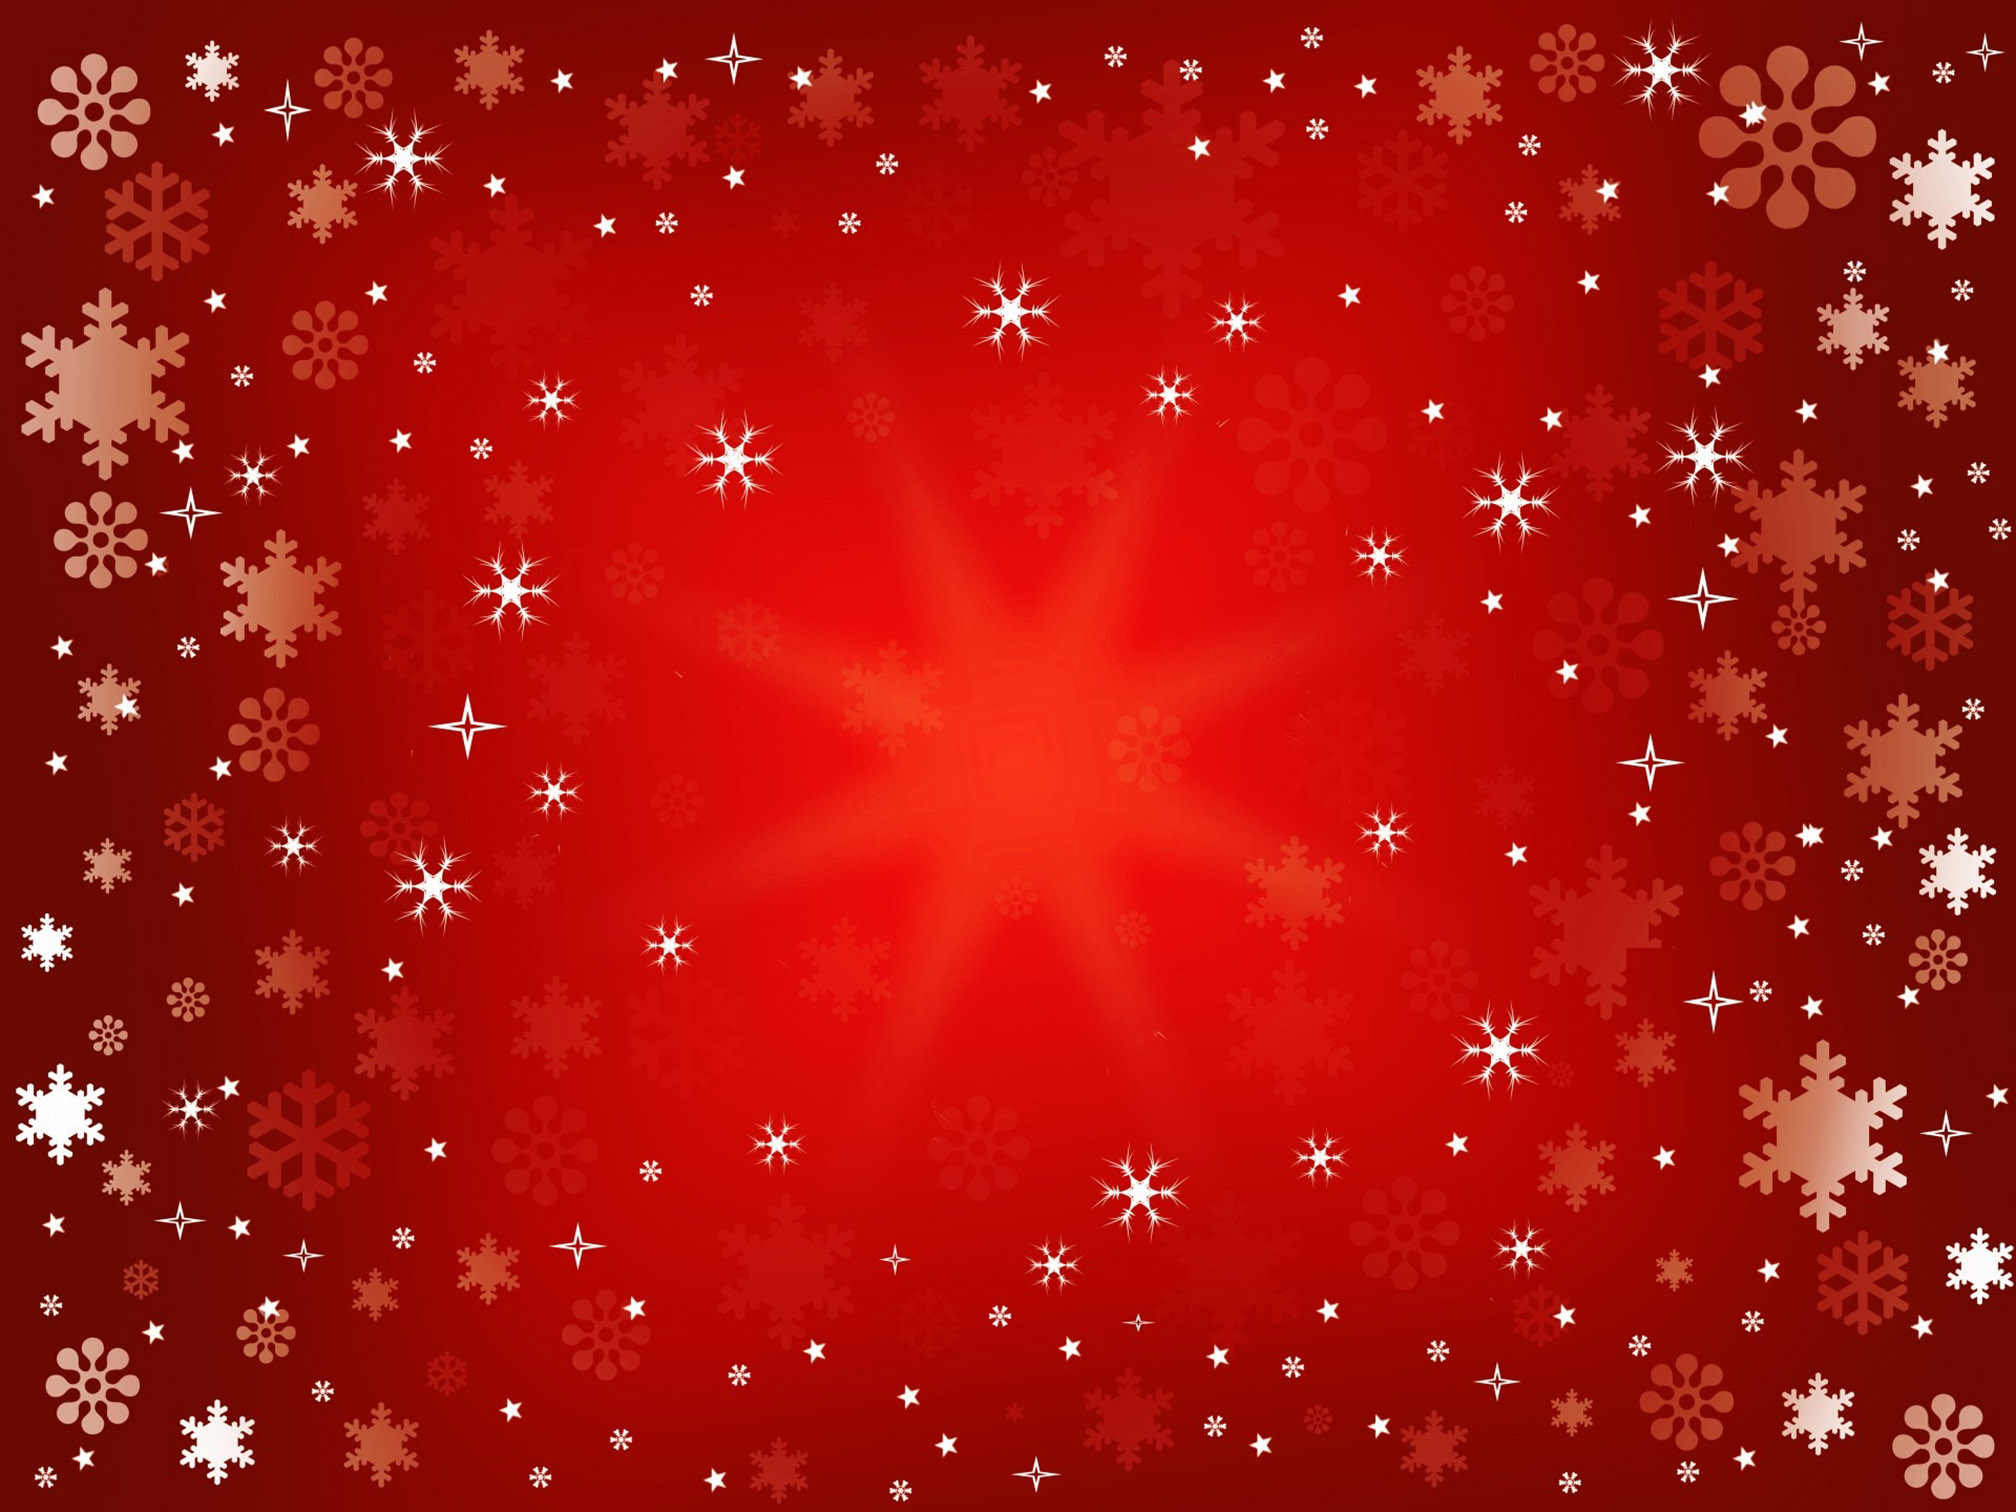 Red Christmas Background Related Keywords & Suggestions ...